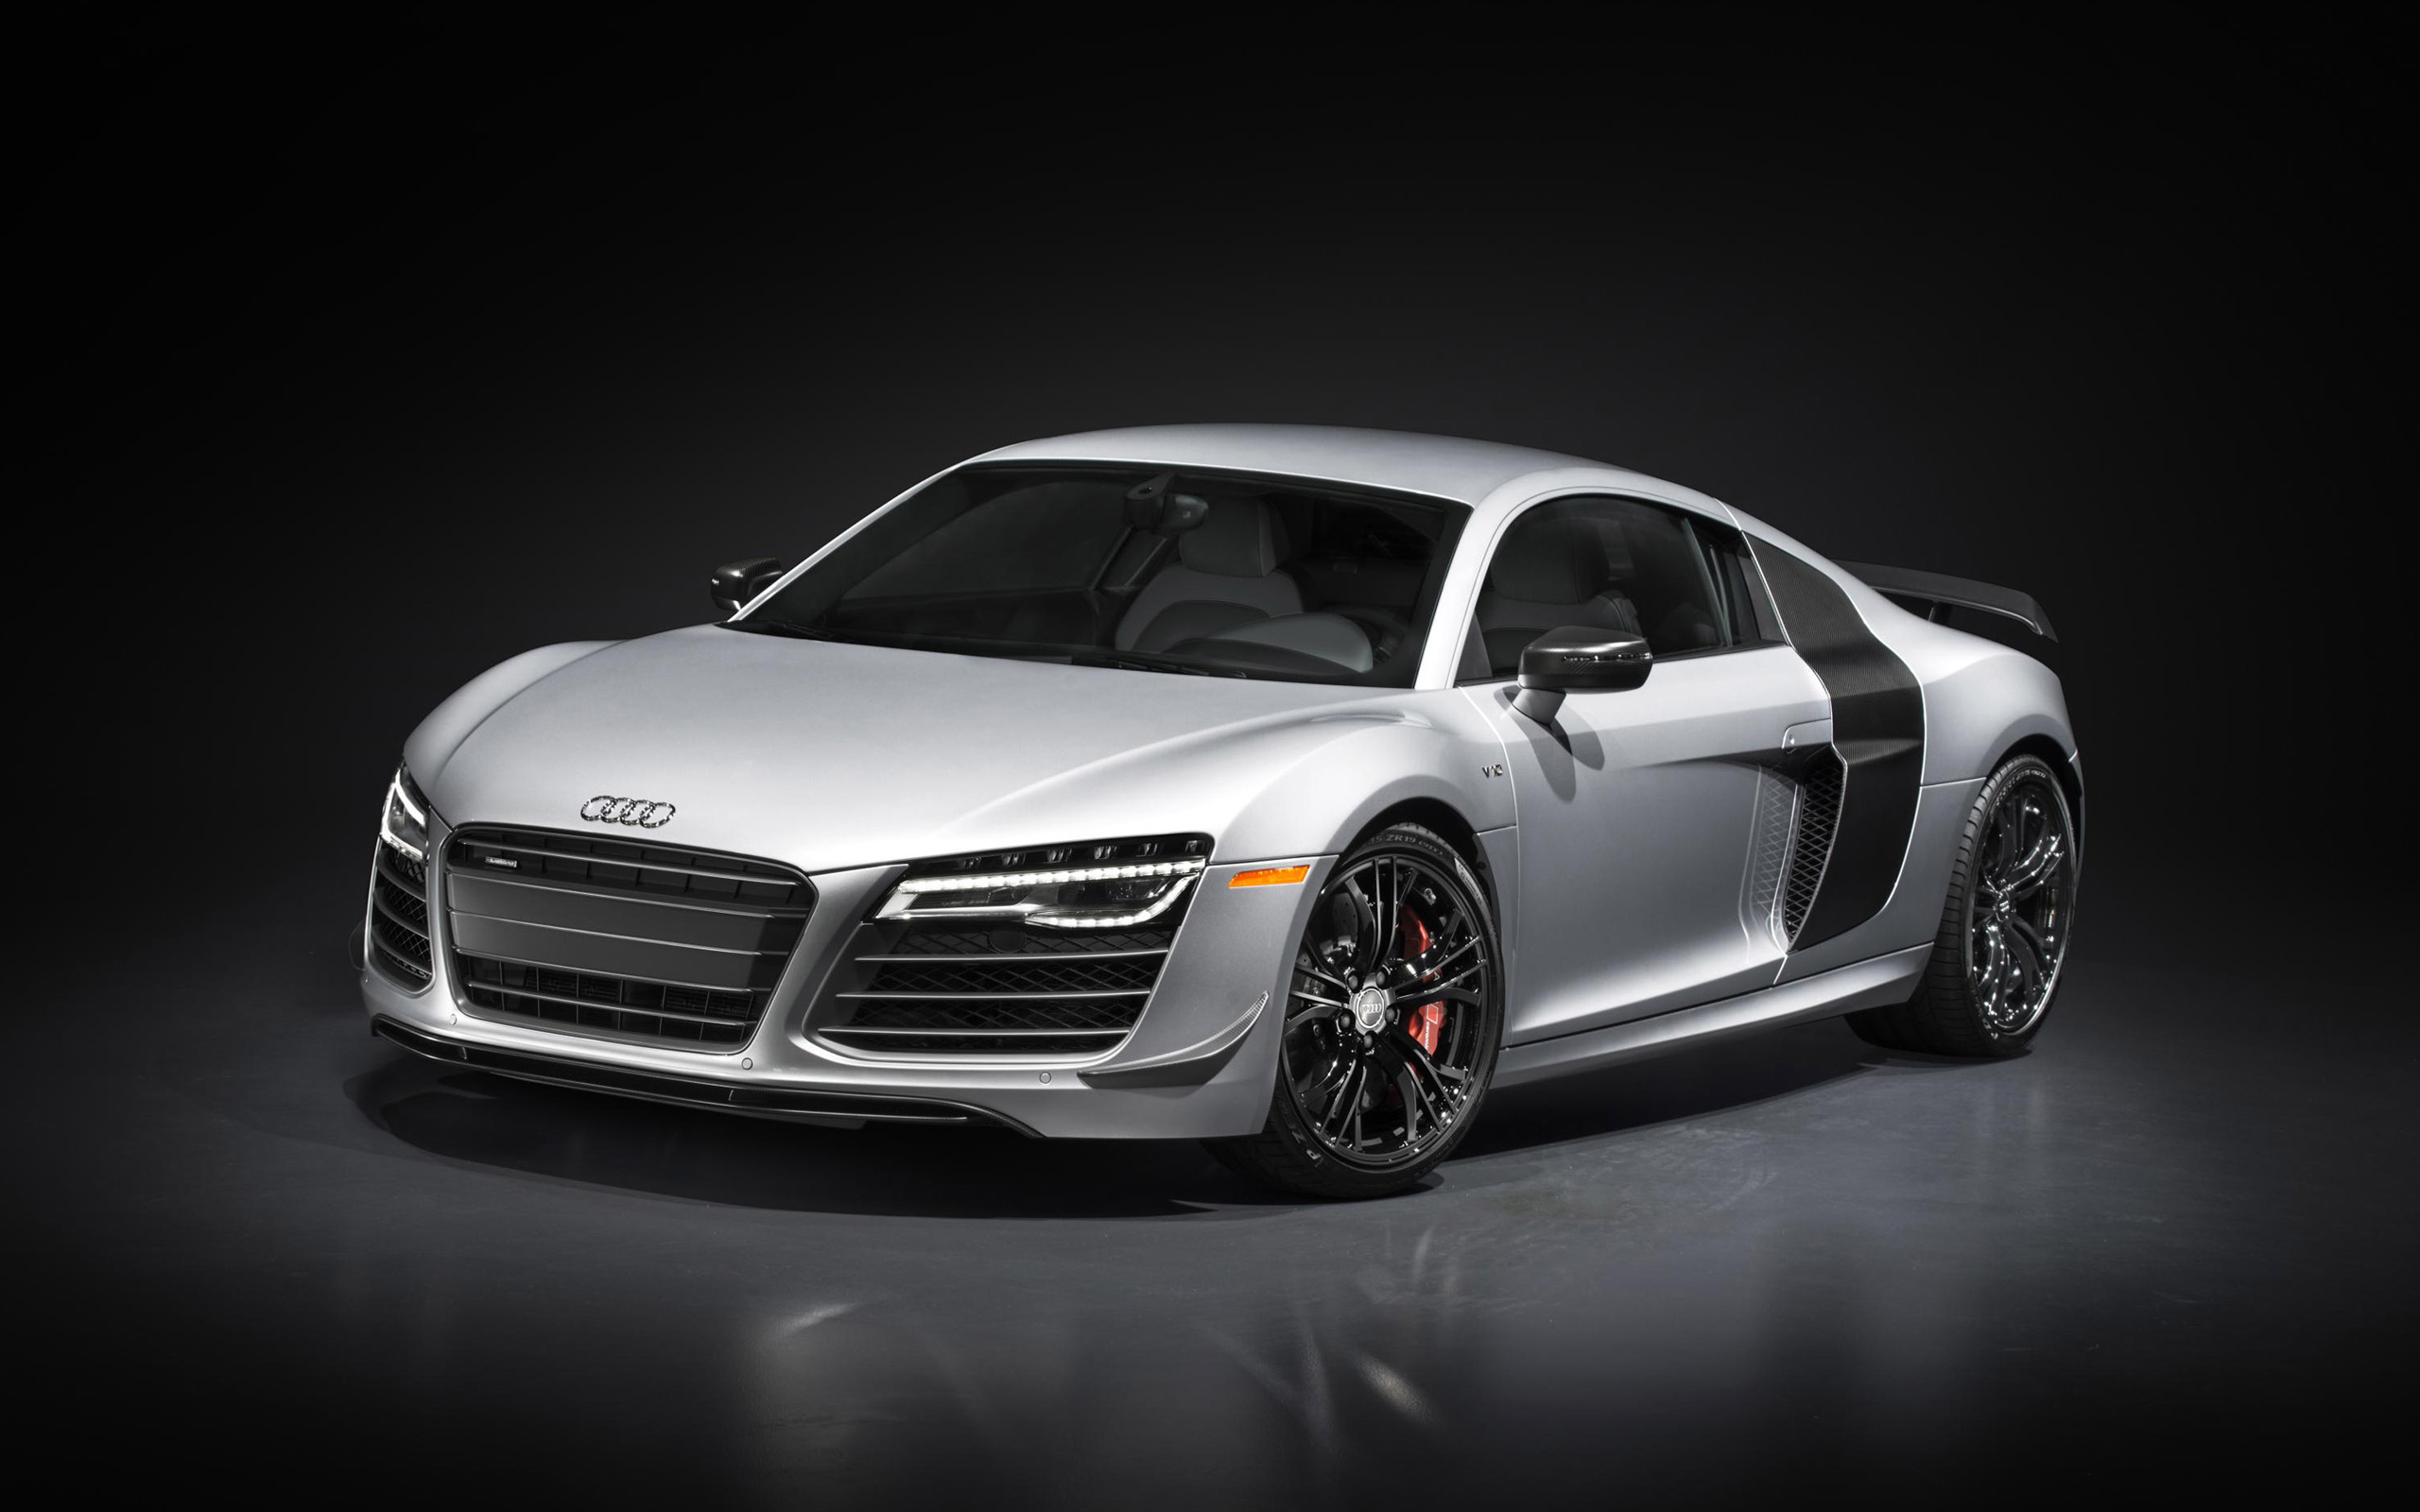 Audi Wallpapers   Page 1   HD Wallpapers 2560x1600